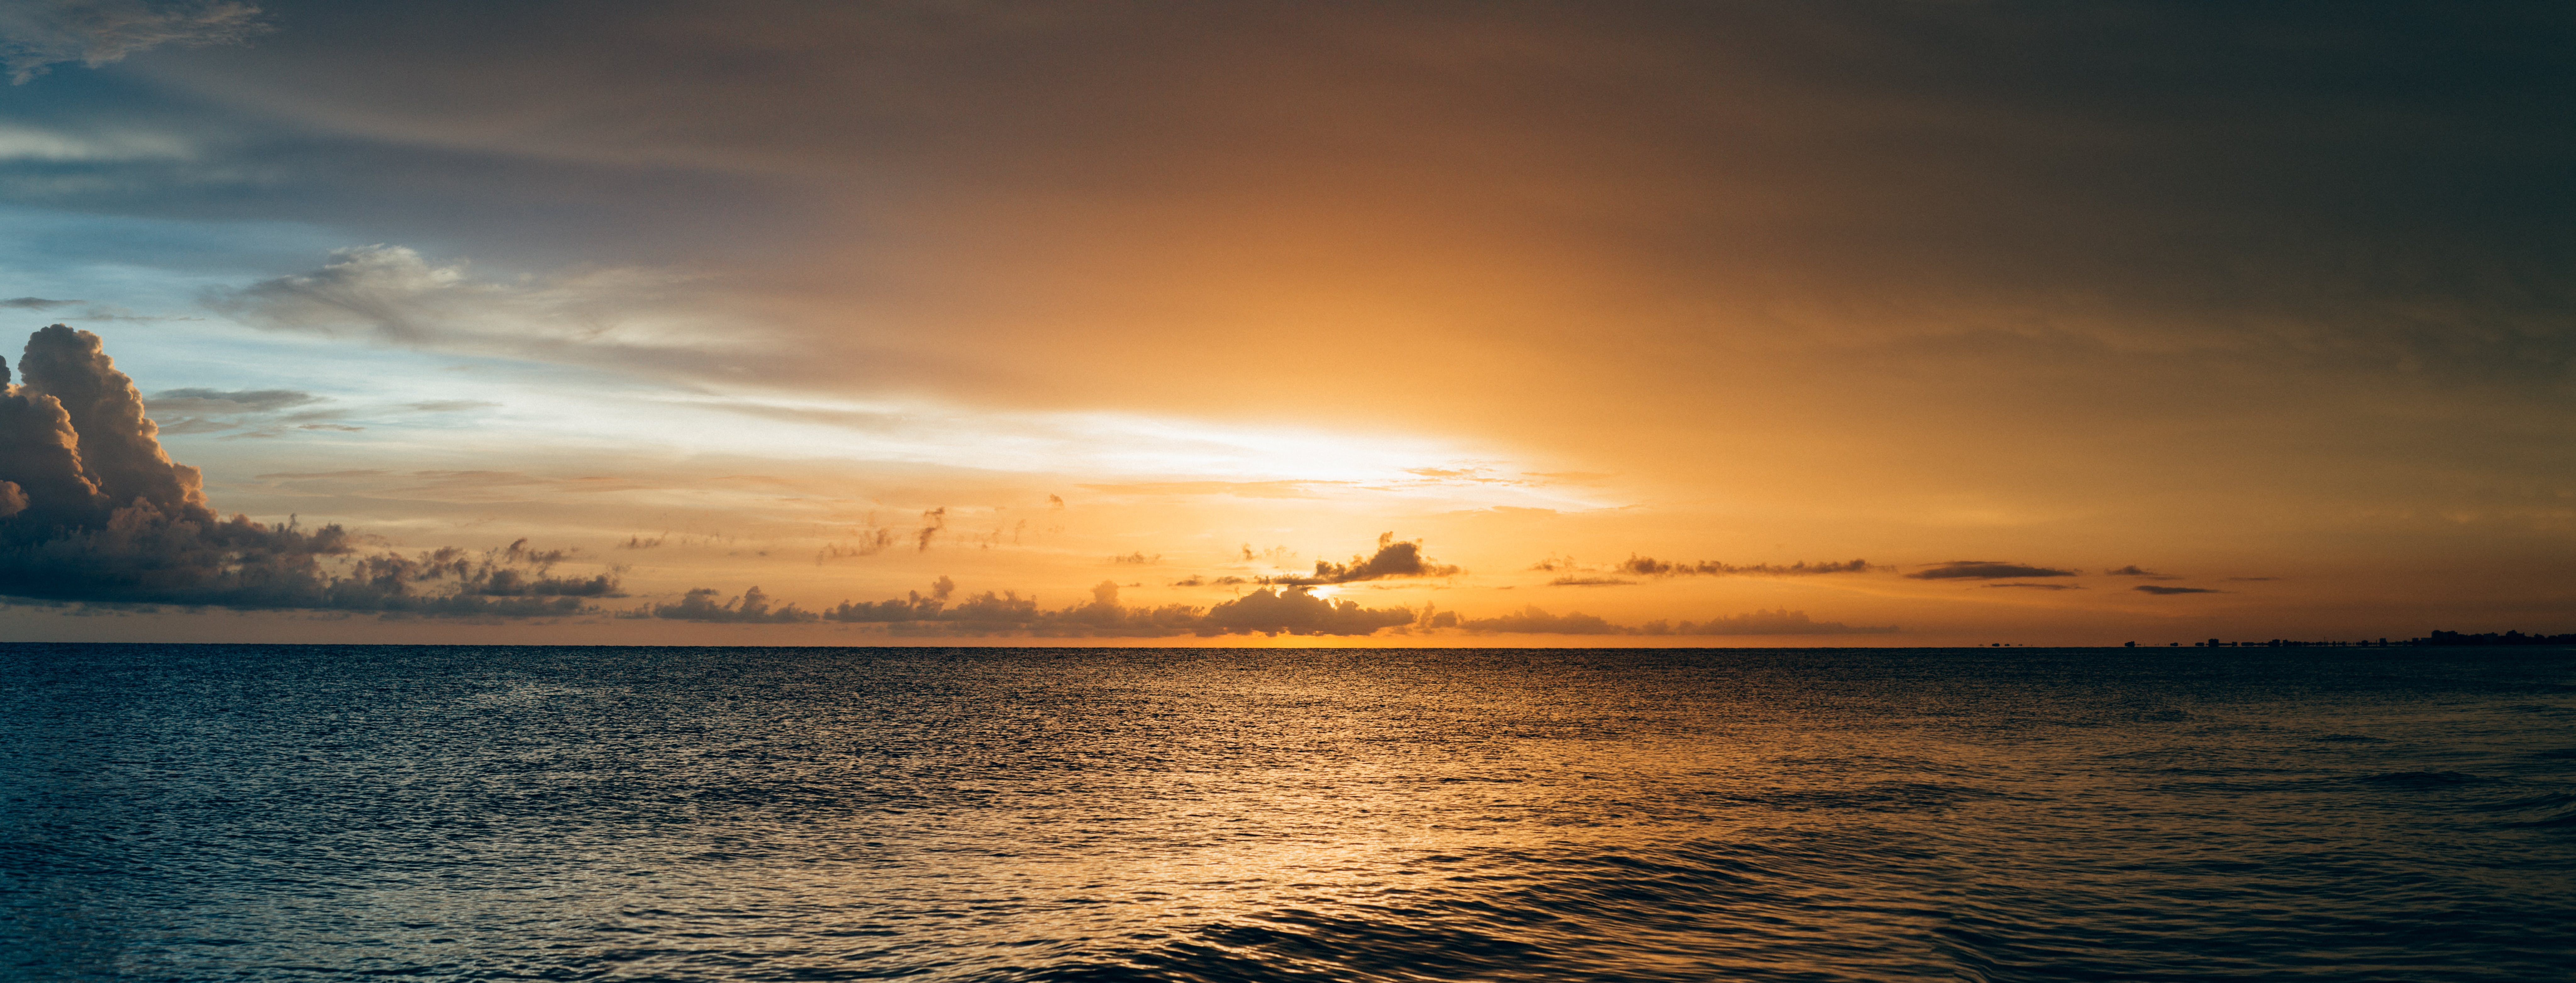 Scenery of Sea Water during Sunset